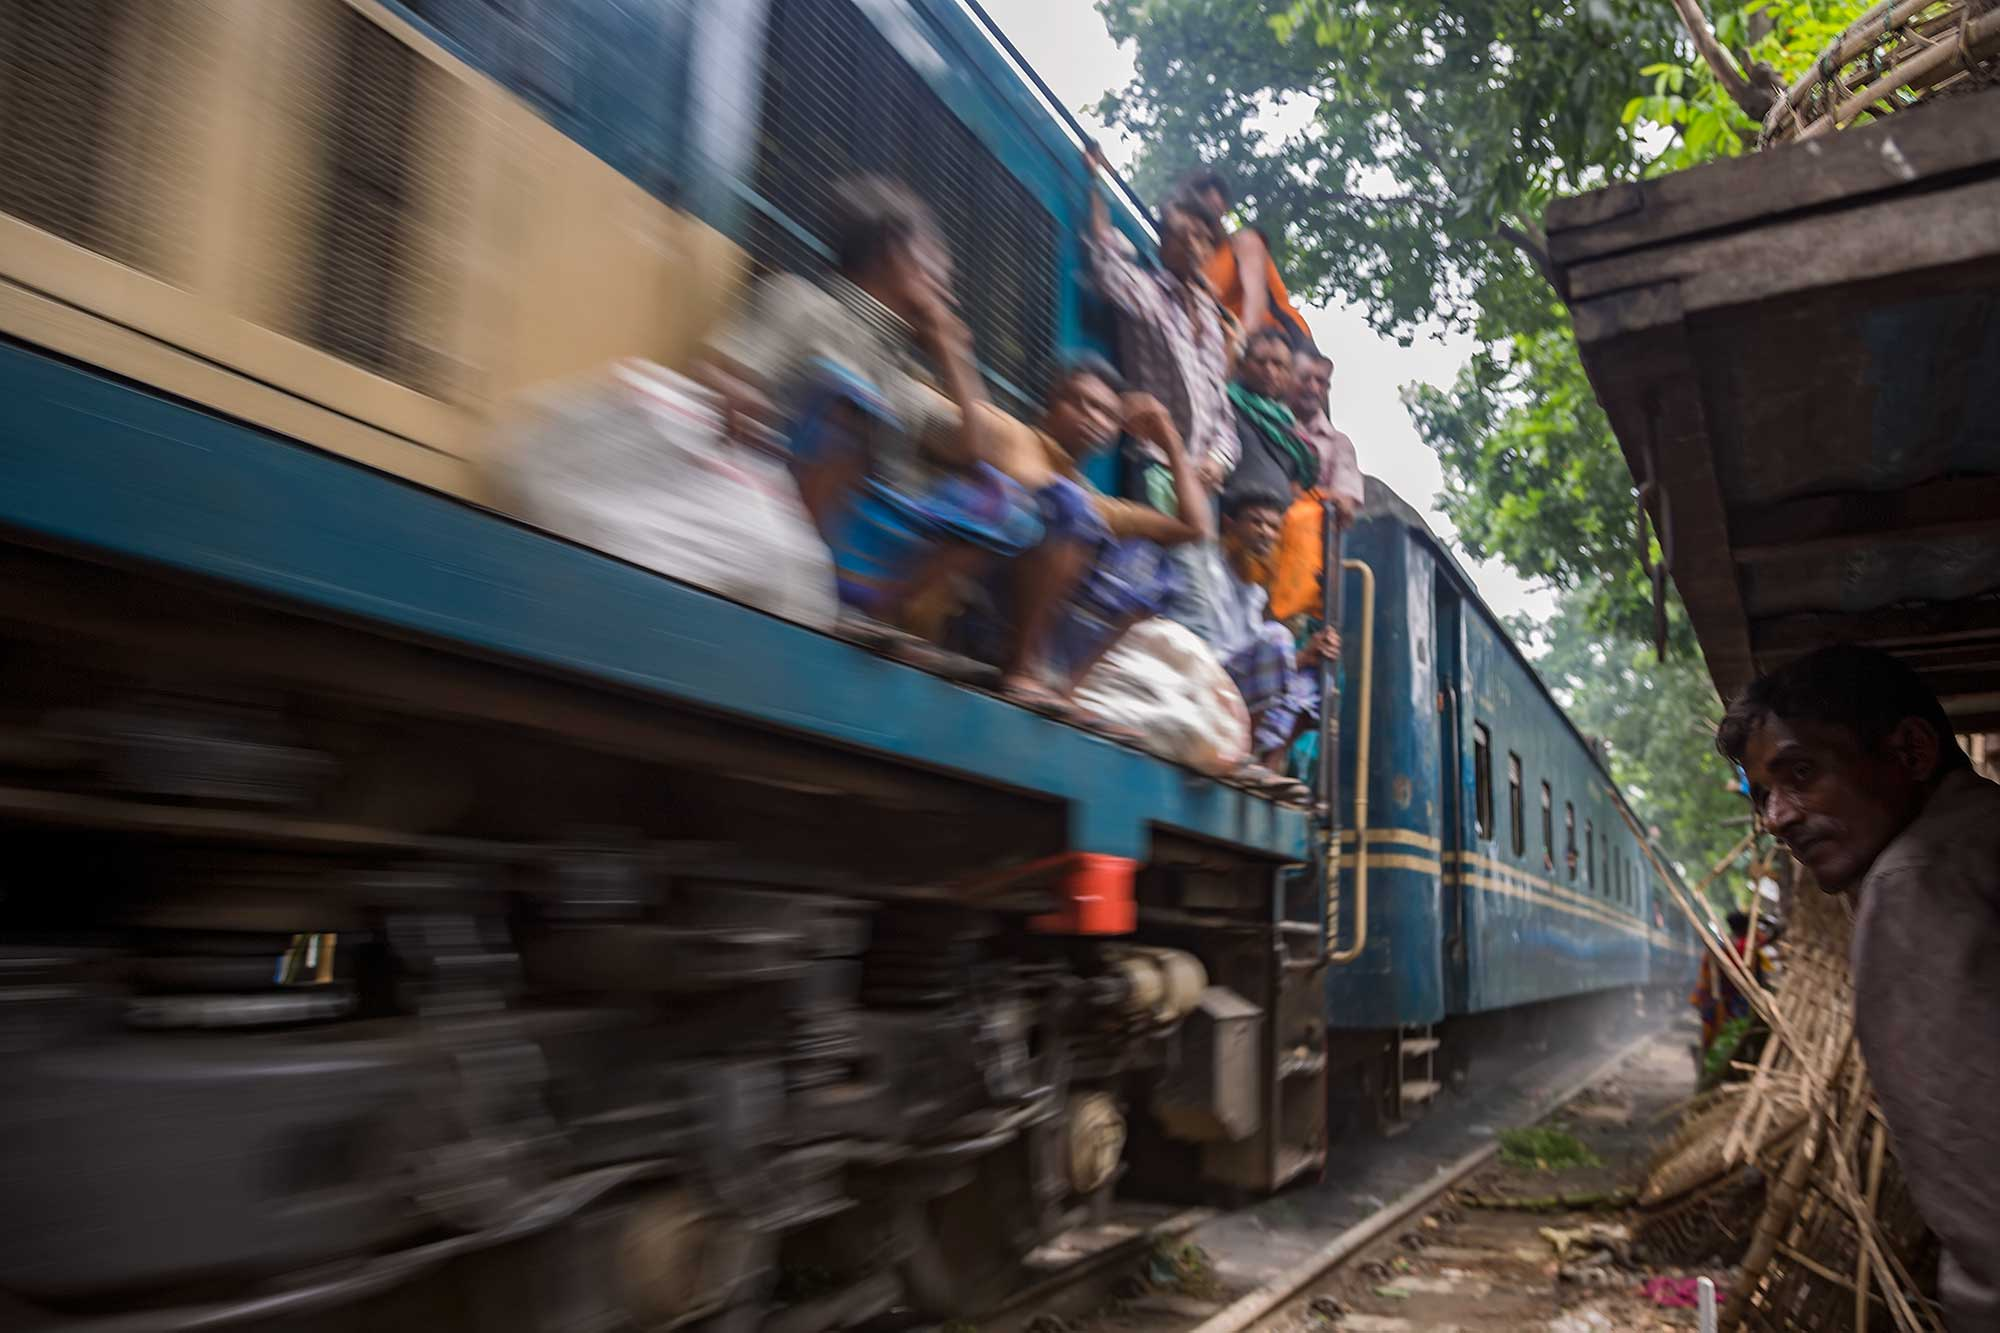 Train passing through Dhaka's shanty town area, Bangladesh. © Ulli Maier & Nisa Maier